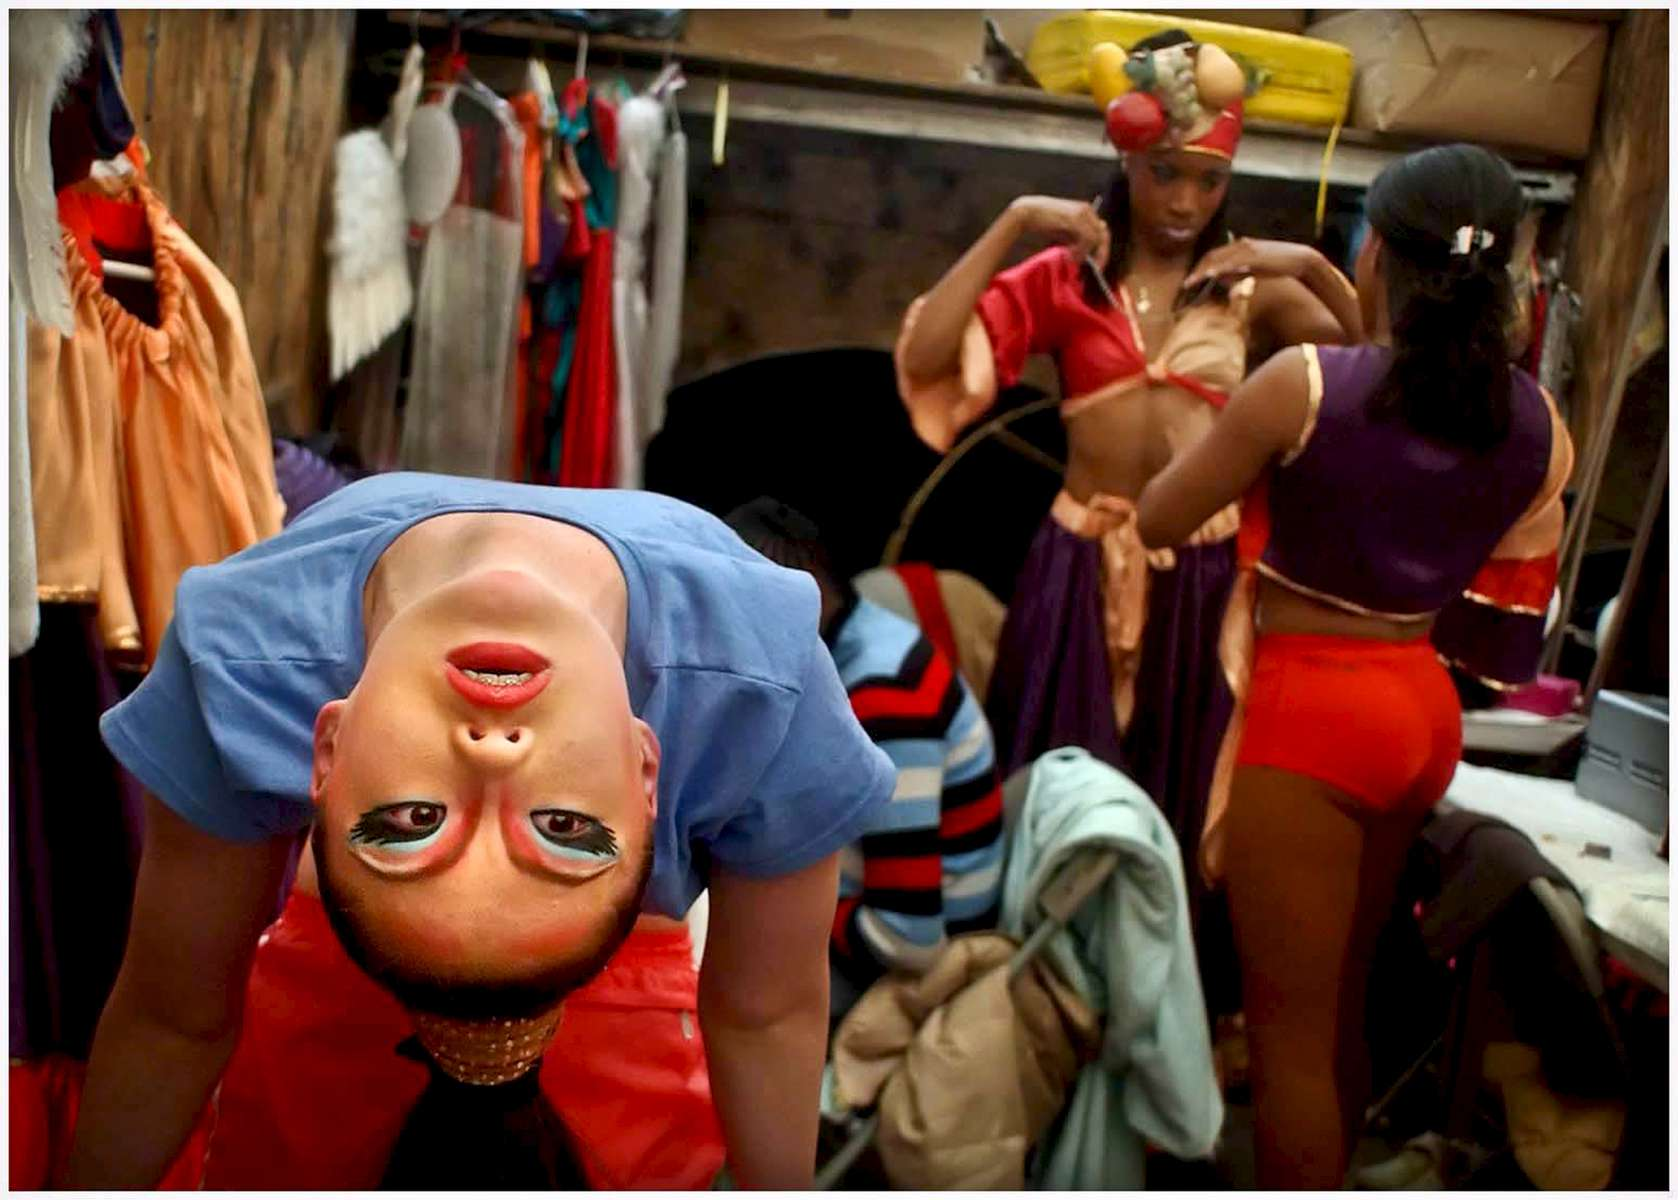 CIRCUS2.NE.042303.SAS -- Contortionist Ganbaatar Buyankhishig (CQ), left, warms up in the women\'s dressing room before performing Wednesday morning in the UniverSoul Circus in downtown Raleigh. The circus also features clowns, a low wire act, an aeriel act, magic, acrobats and more.The one-ring circus is celebrating its tenth anniversary season. STAFF/SHER STONEMAN